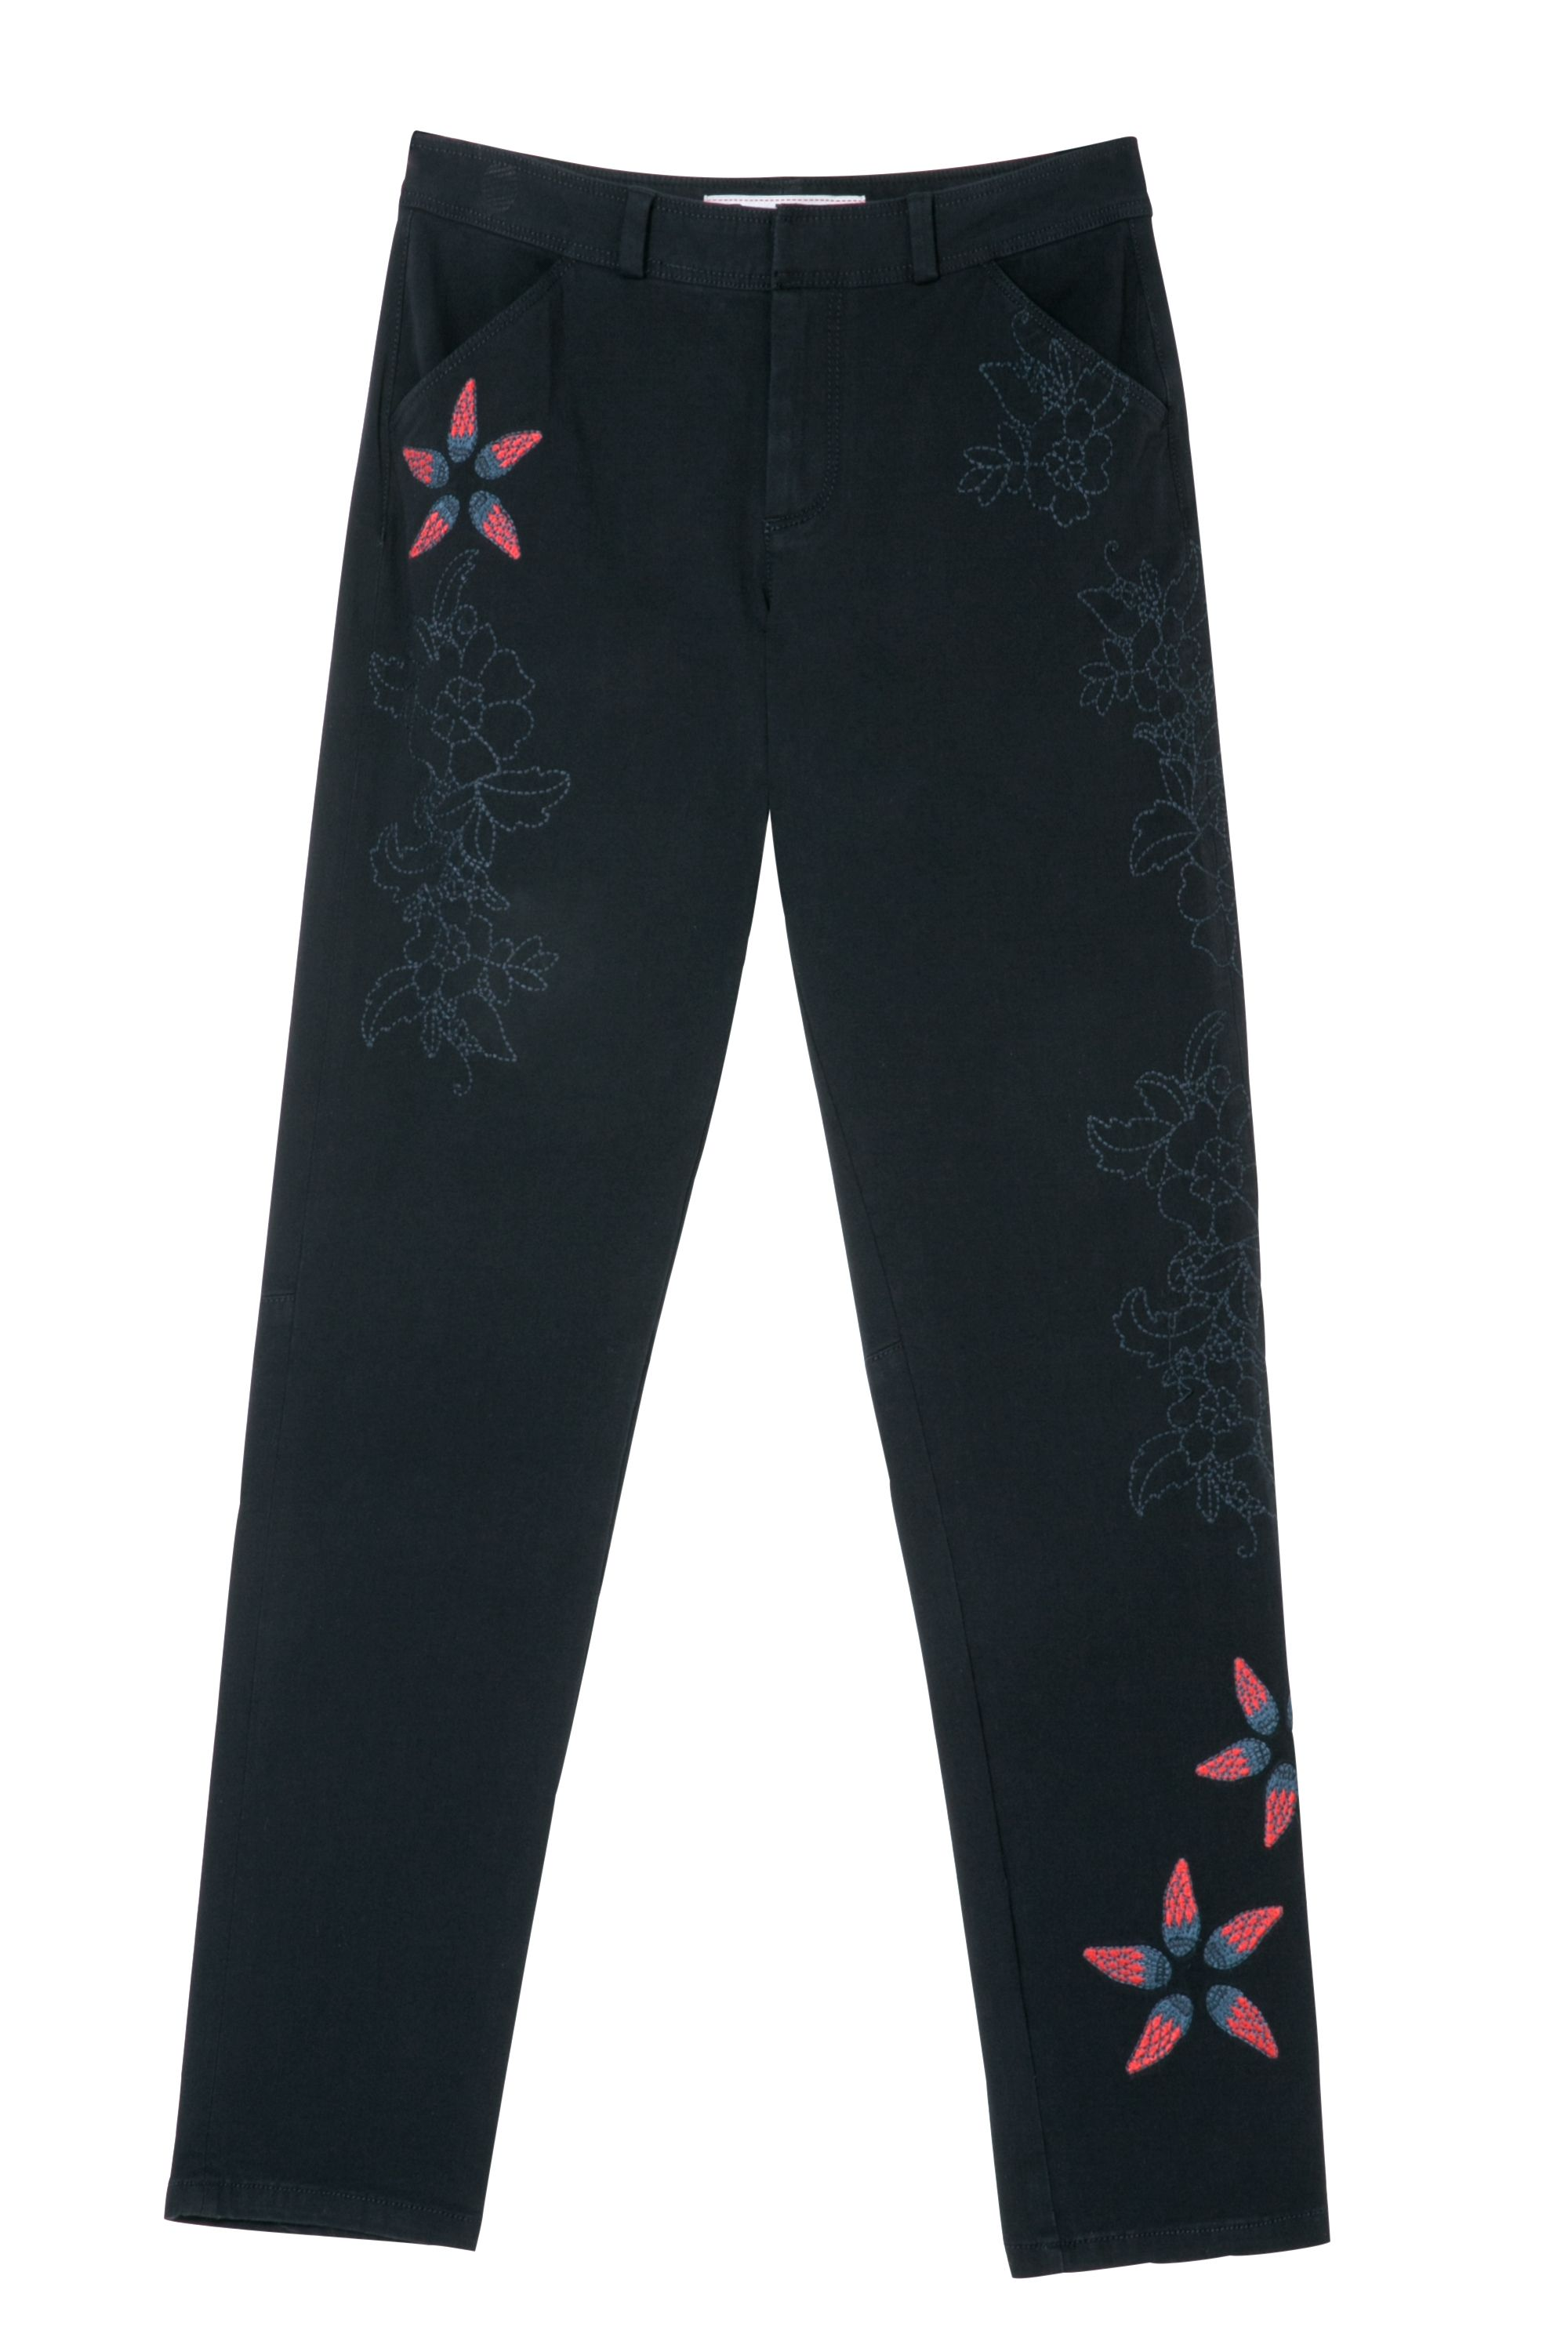 Desigual Trousers Nuria, Black